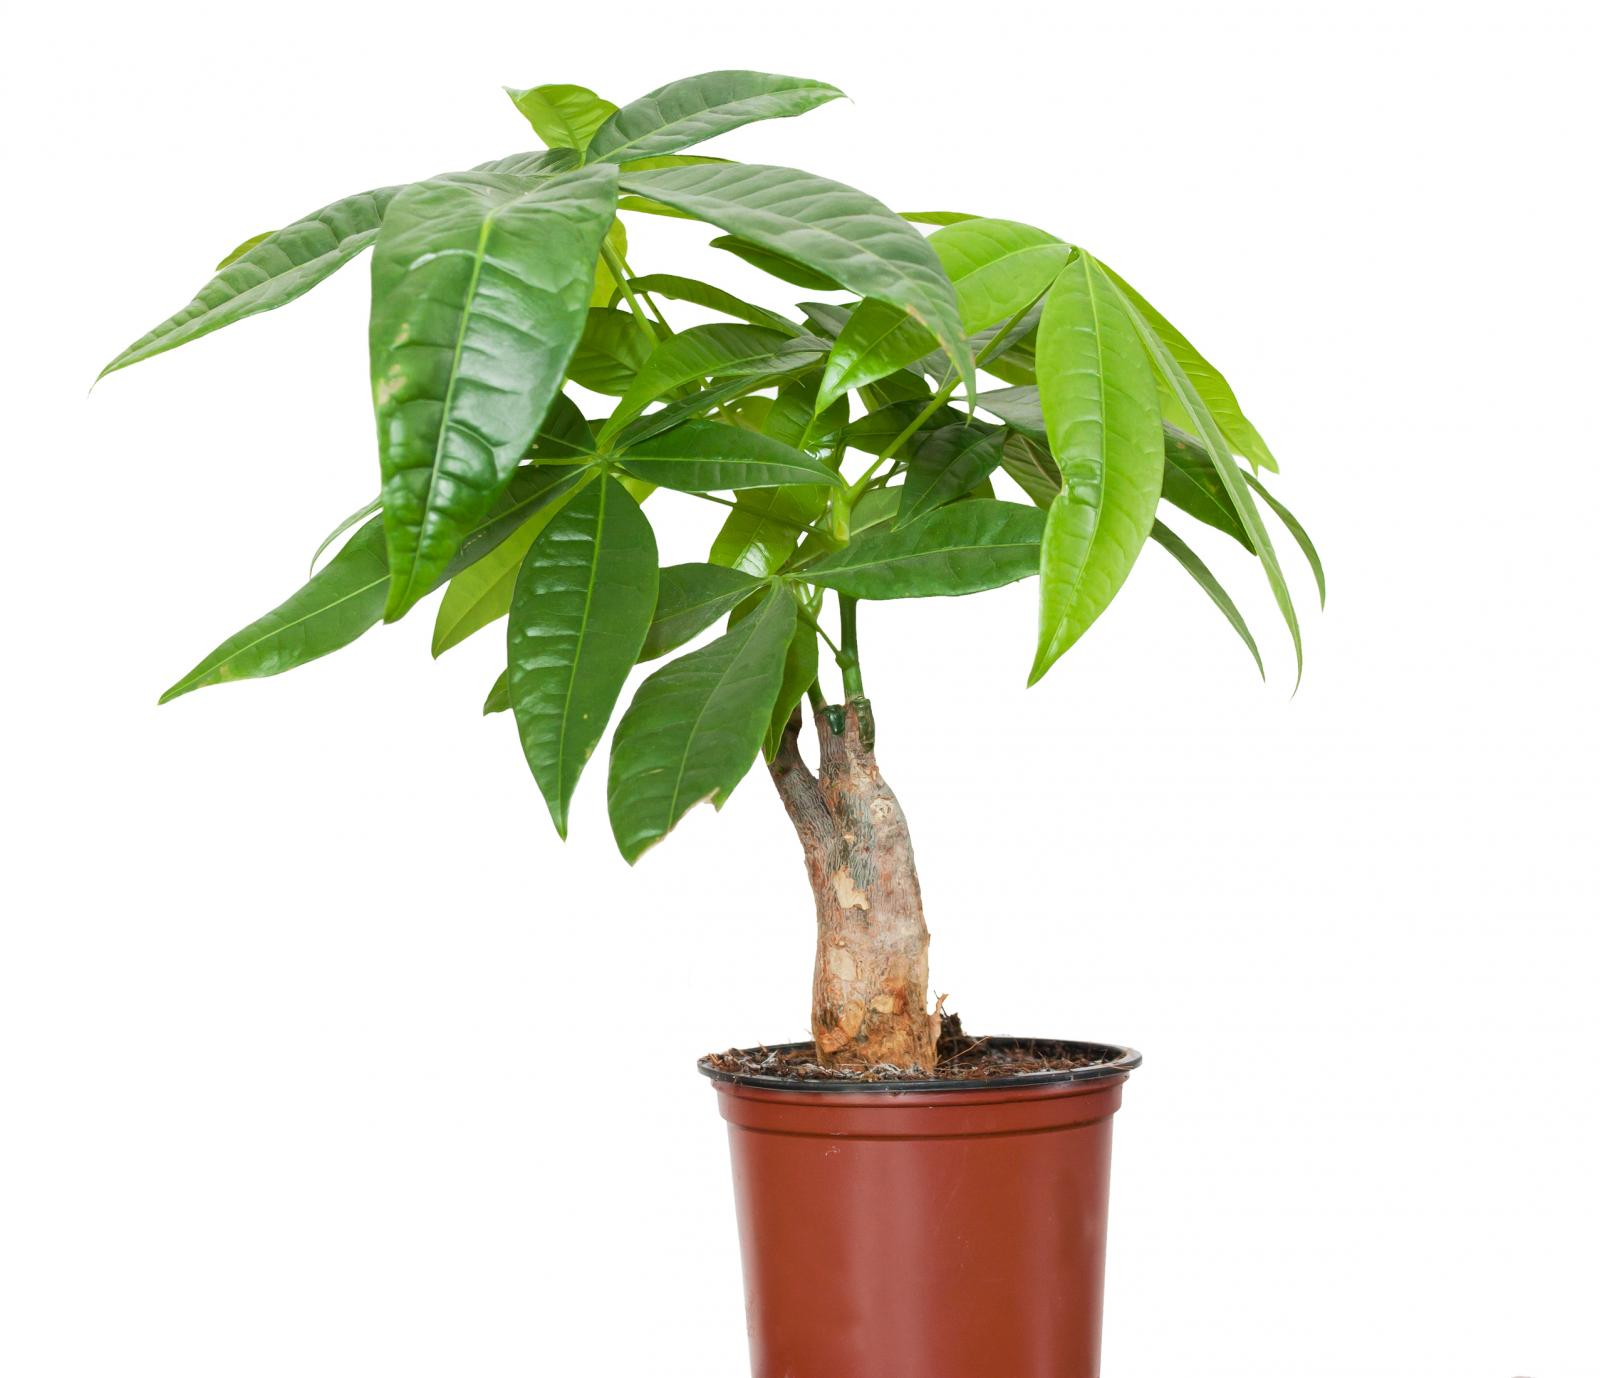 Pachira plant is feng shui money tree